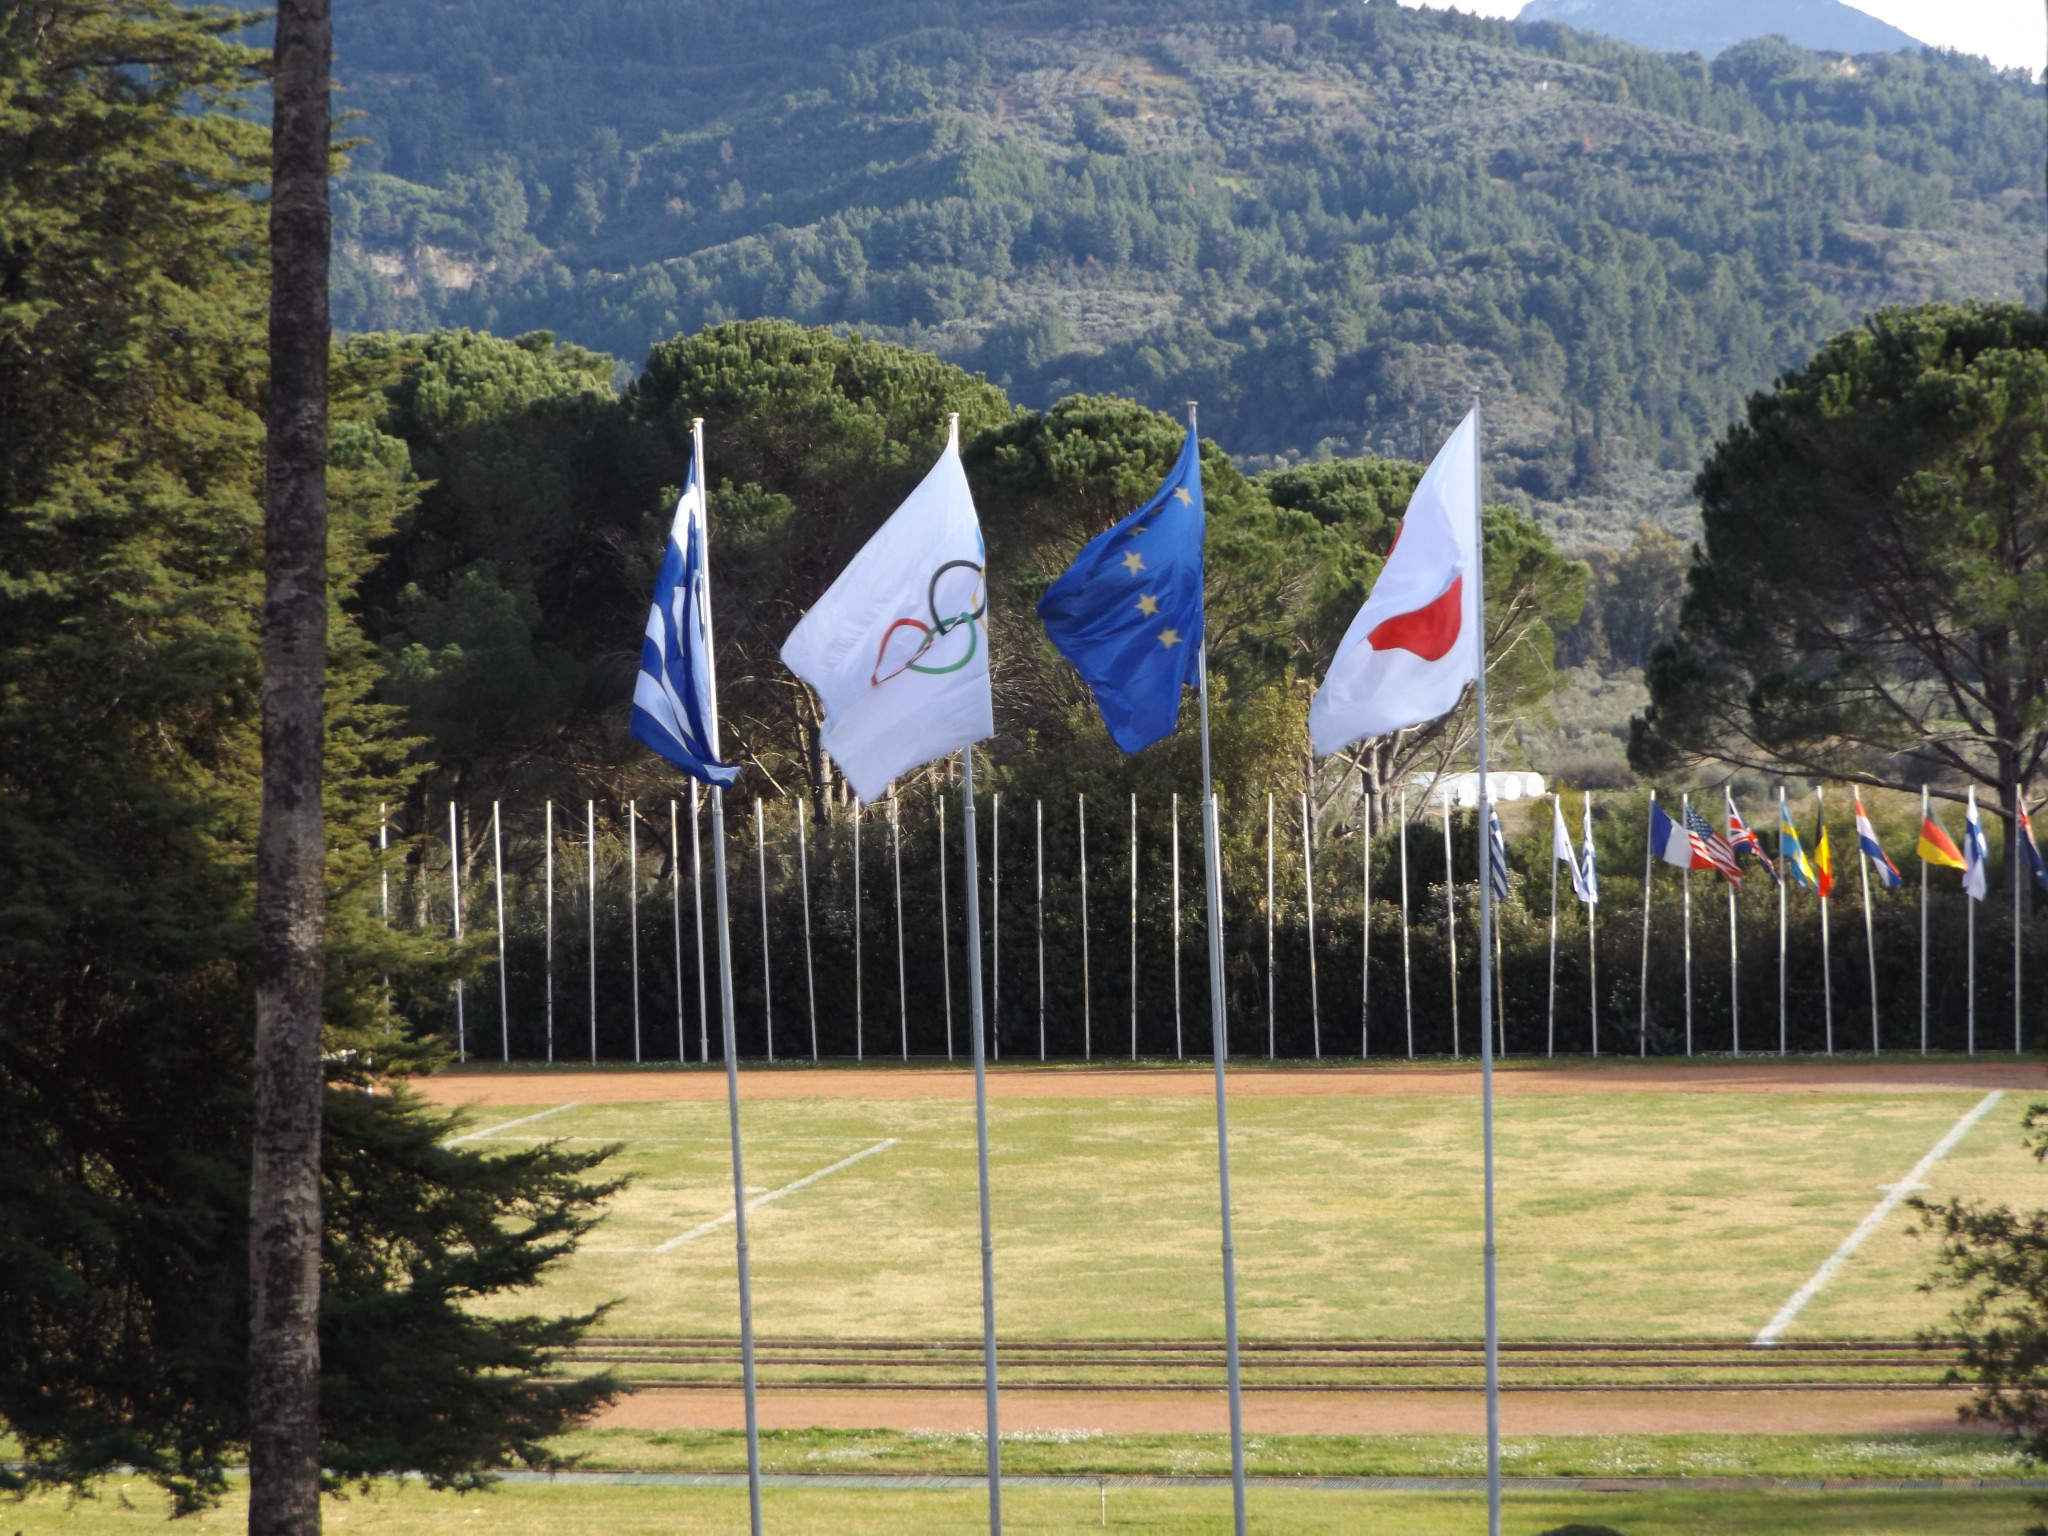 The sports field at the International Olympic Academy will be modernised as part of the facelift ©Philip Barker